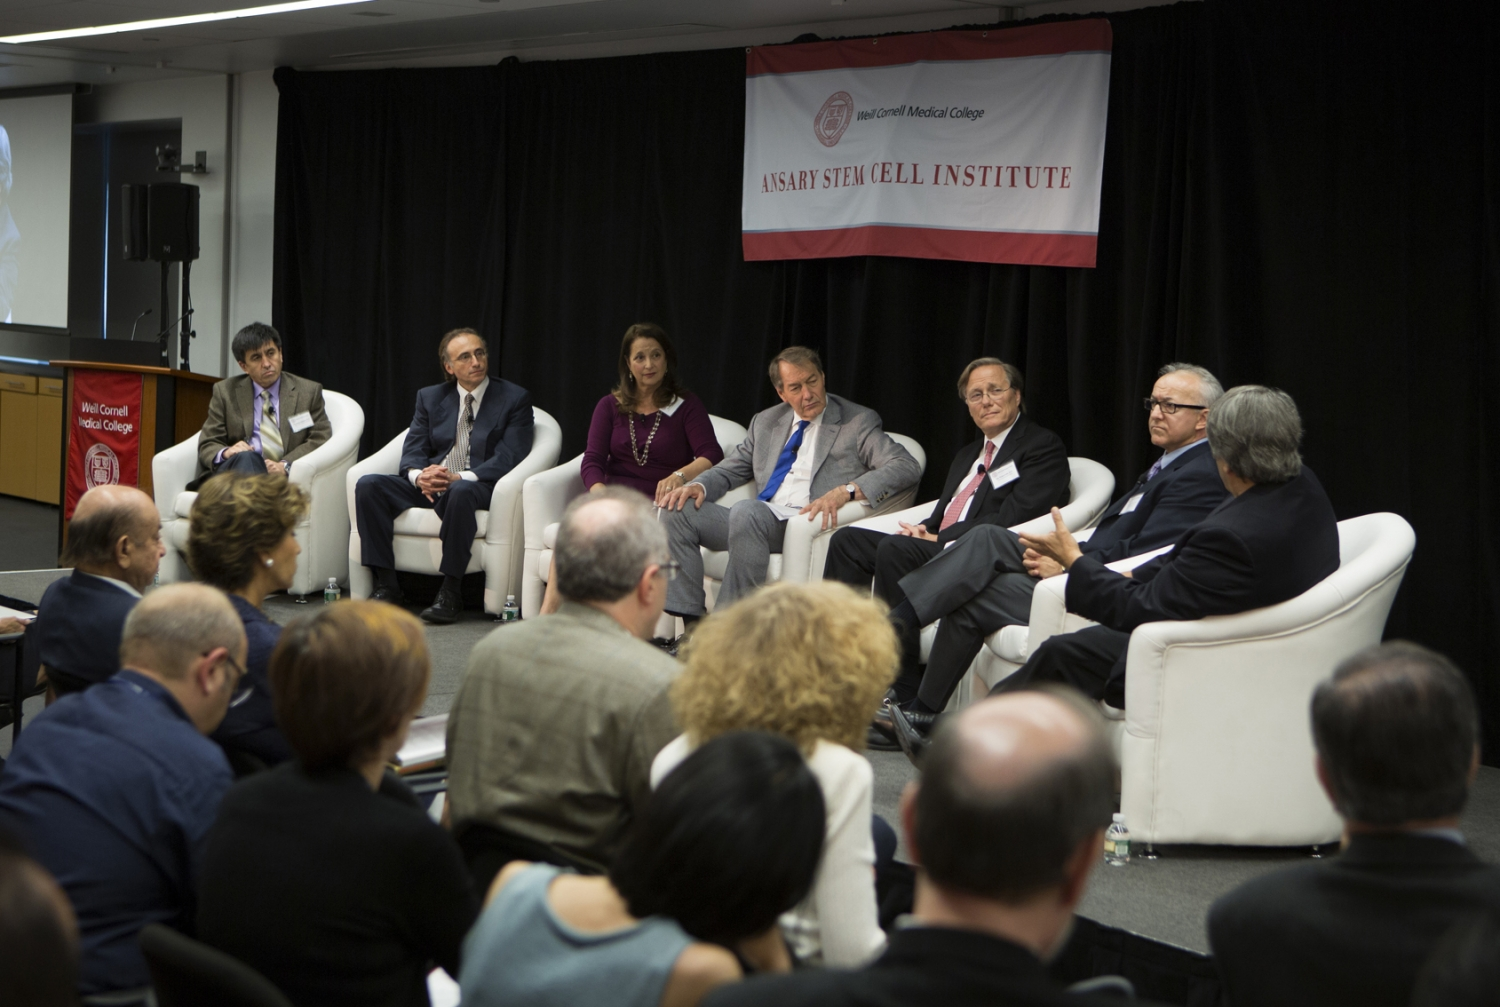 A roundtable hosted by broadcast journalist Charlie Rose was the marquee session of the Ansary Symposium on Stem Cell Research. From left, Dr. Shoukhrat Mitalipov, Dr. Shahin Rafii, Susan Solomon, Rose, Dr. Zev Rosenwaks, Dr. George Daley and Dr. Alan Trounson.  All photos: Janet Charles